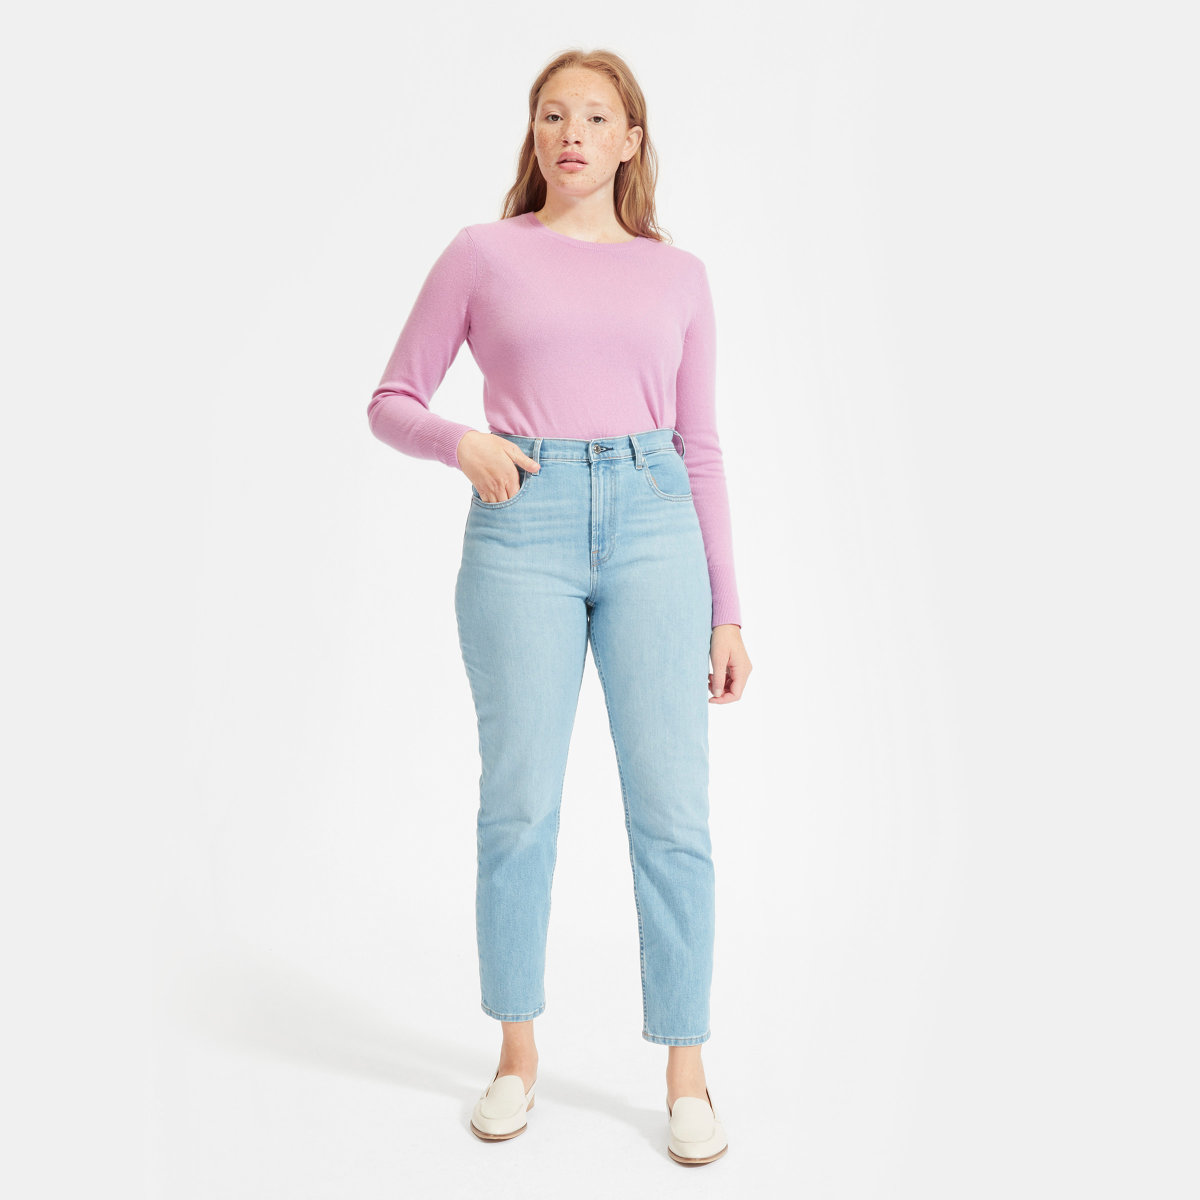 Everlane Choose What You Pay / Cashmere Crew Sweater - Sunshine Style, A Florida Based Fashion Blog